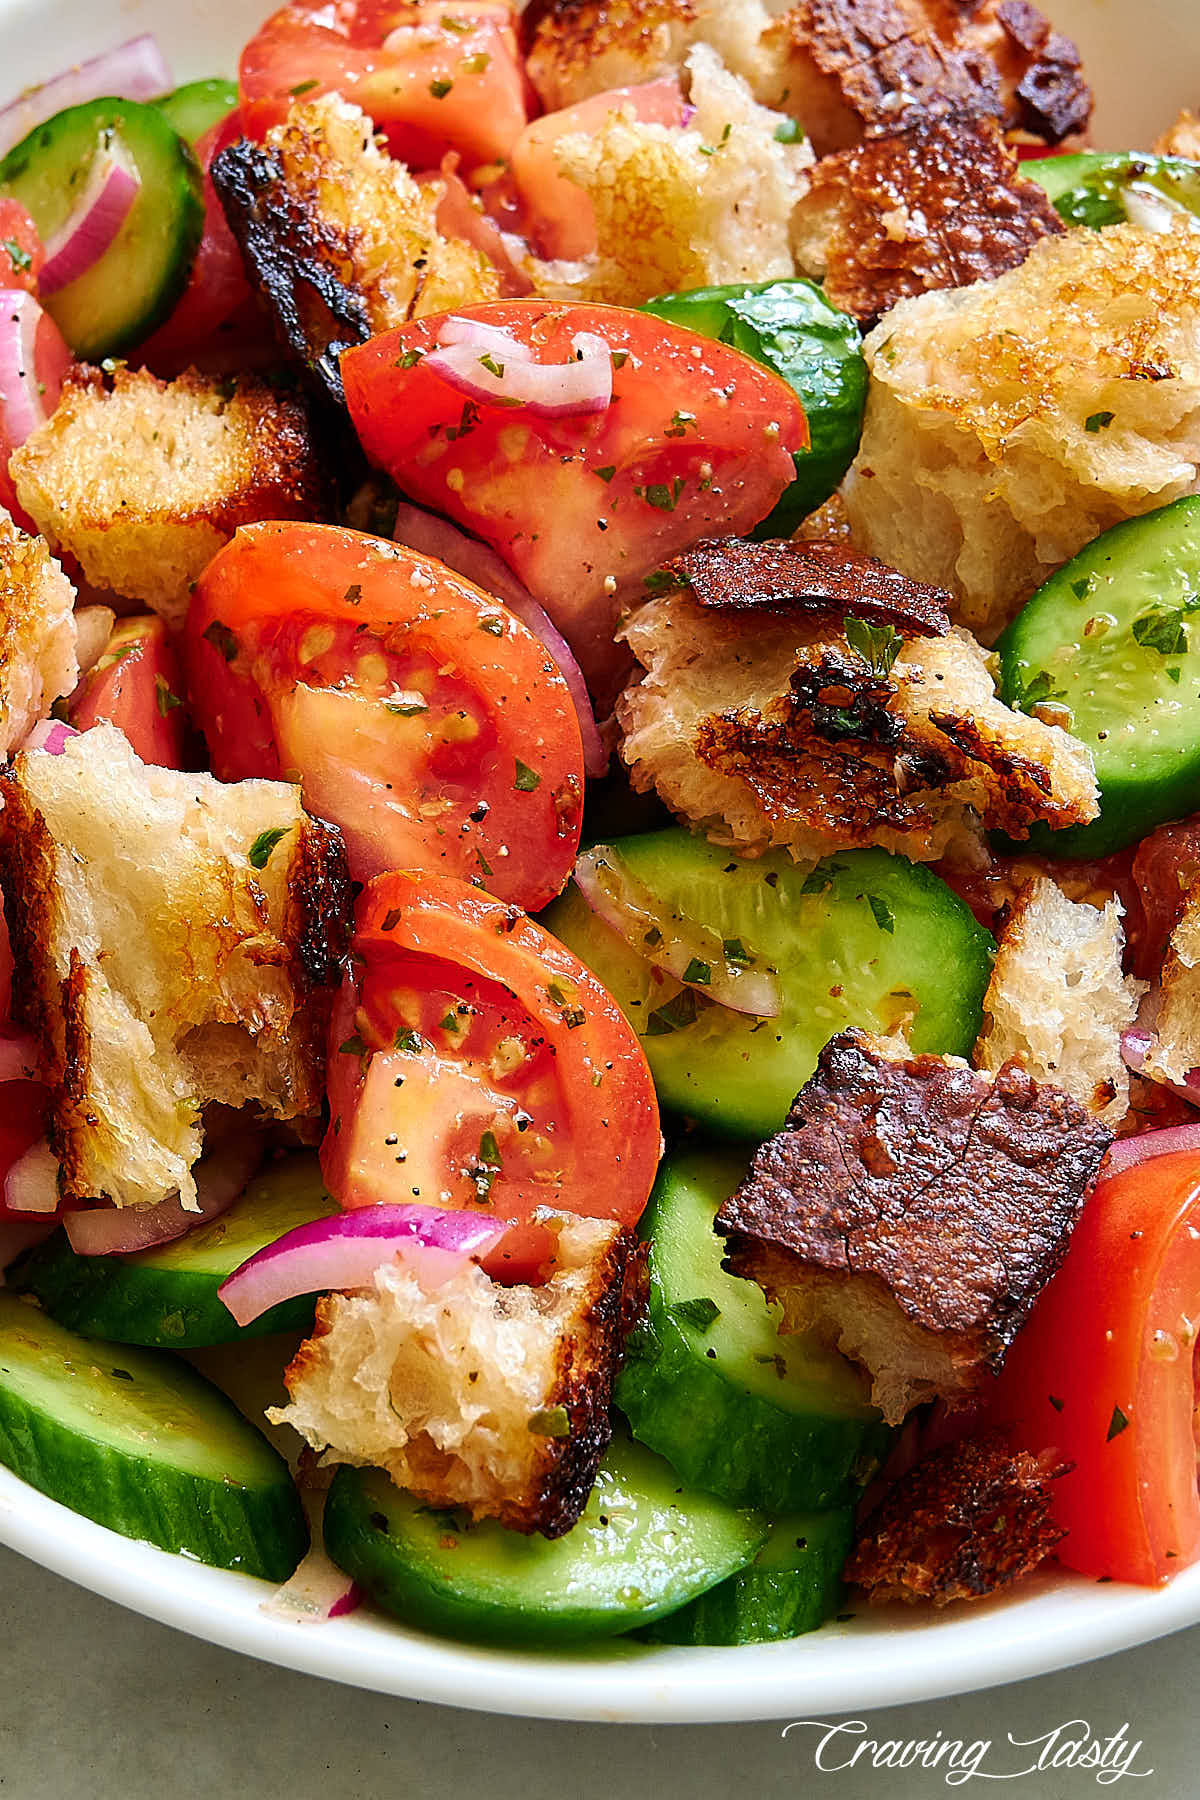 Close up of bread salad consisting of chunks of sourdough bread, tomatoes, cucumbers and red onions.